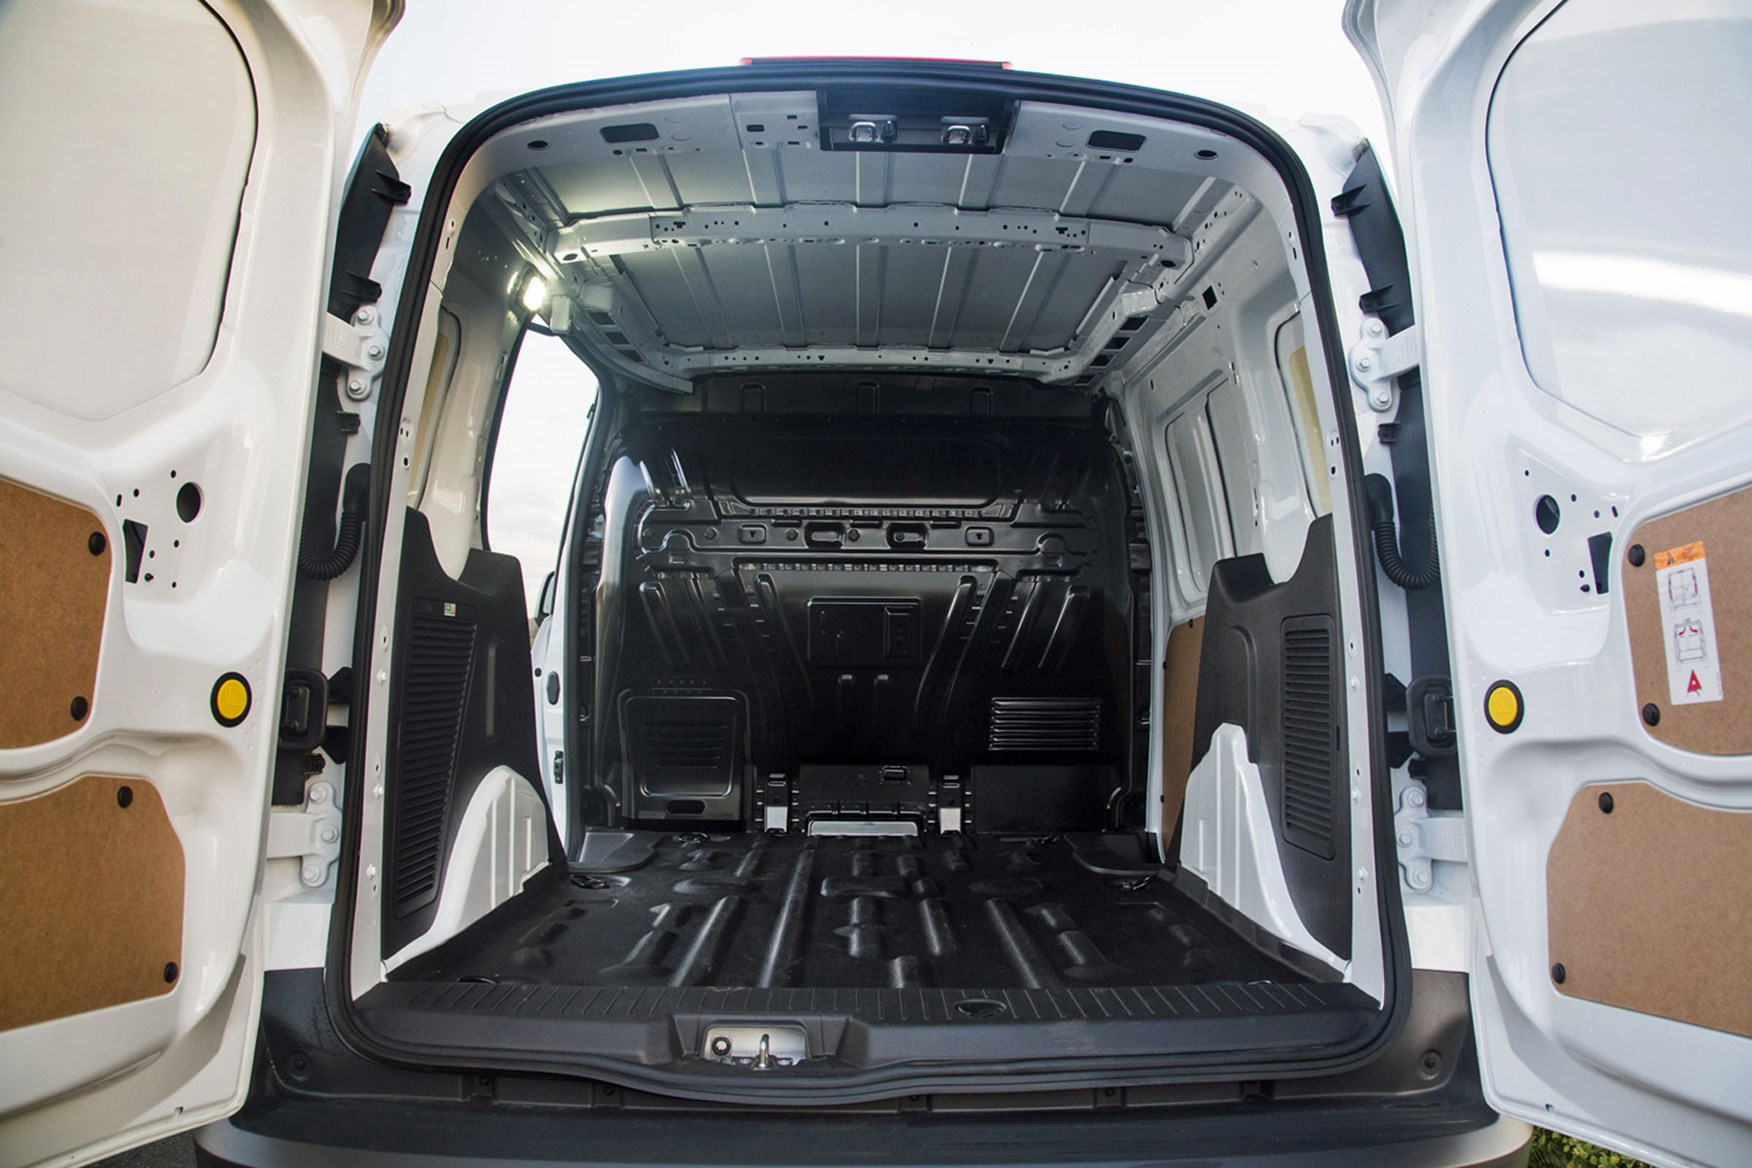 Ford Transit Connect Van Dimensions 2013 On Capacity